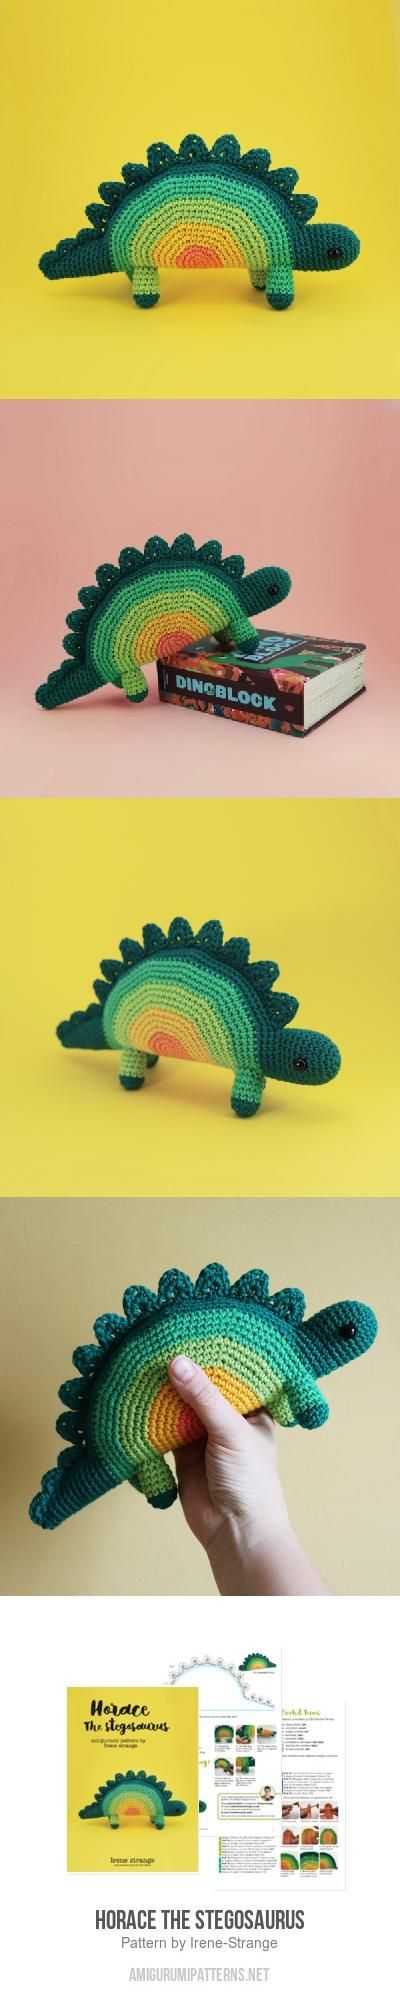 Horace The Stegosaurus Amigurumi Pattern